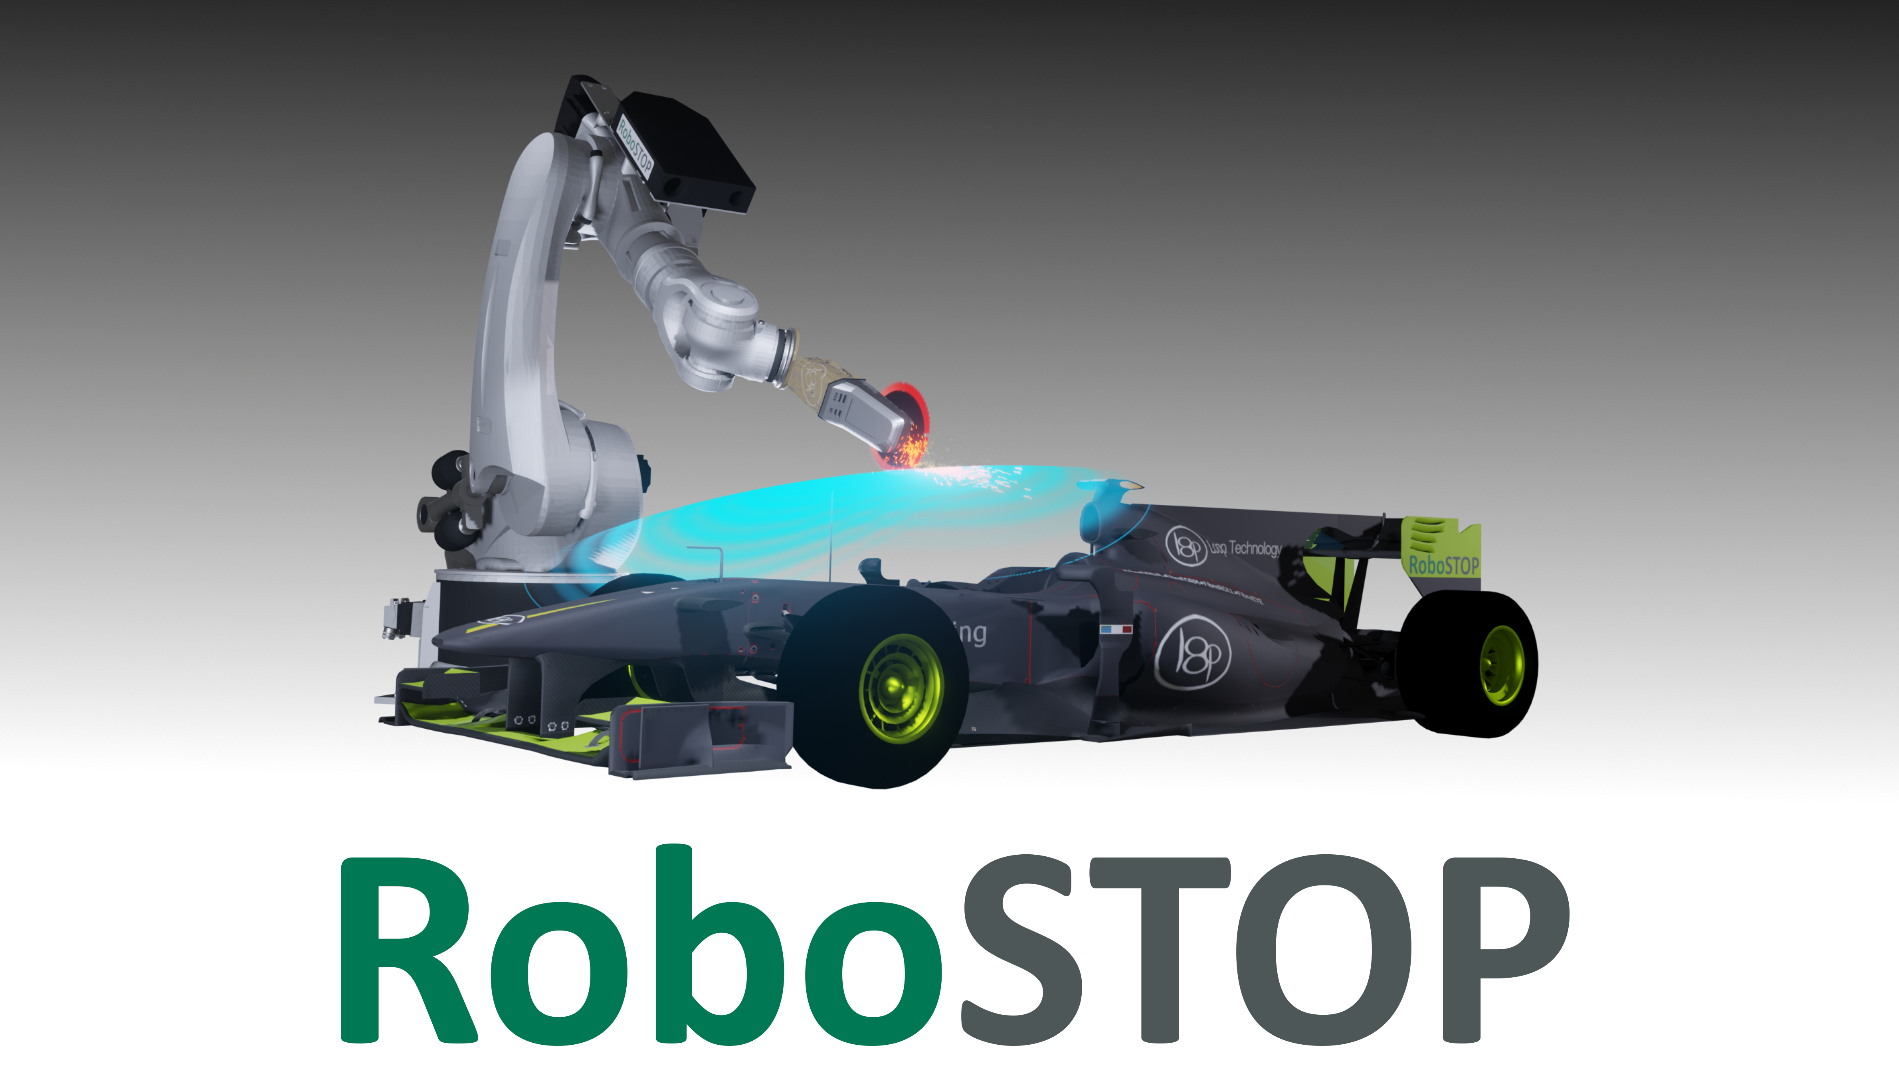 Robot Arm preventing damaging a formula 1 racing car.